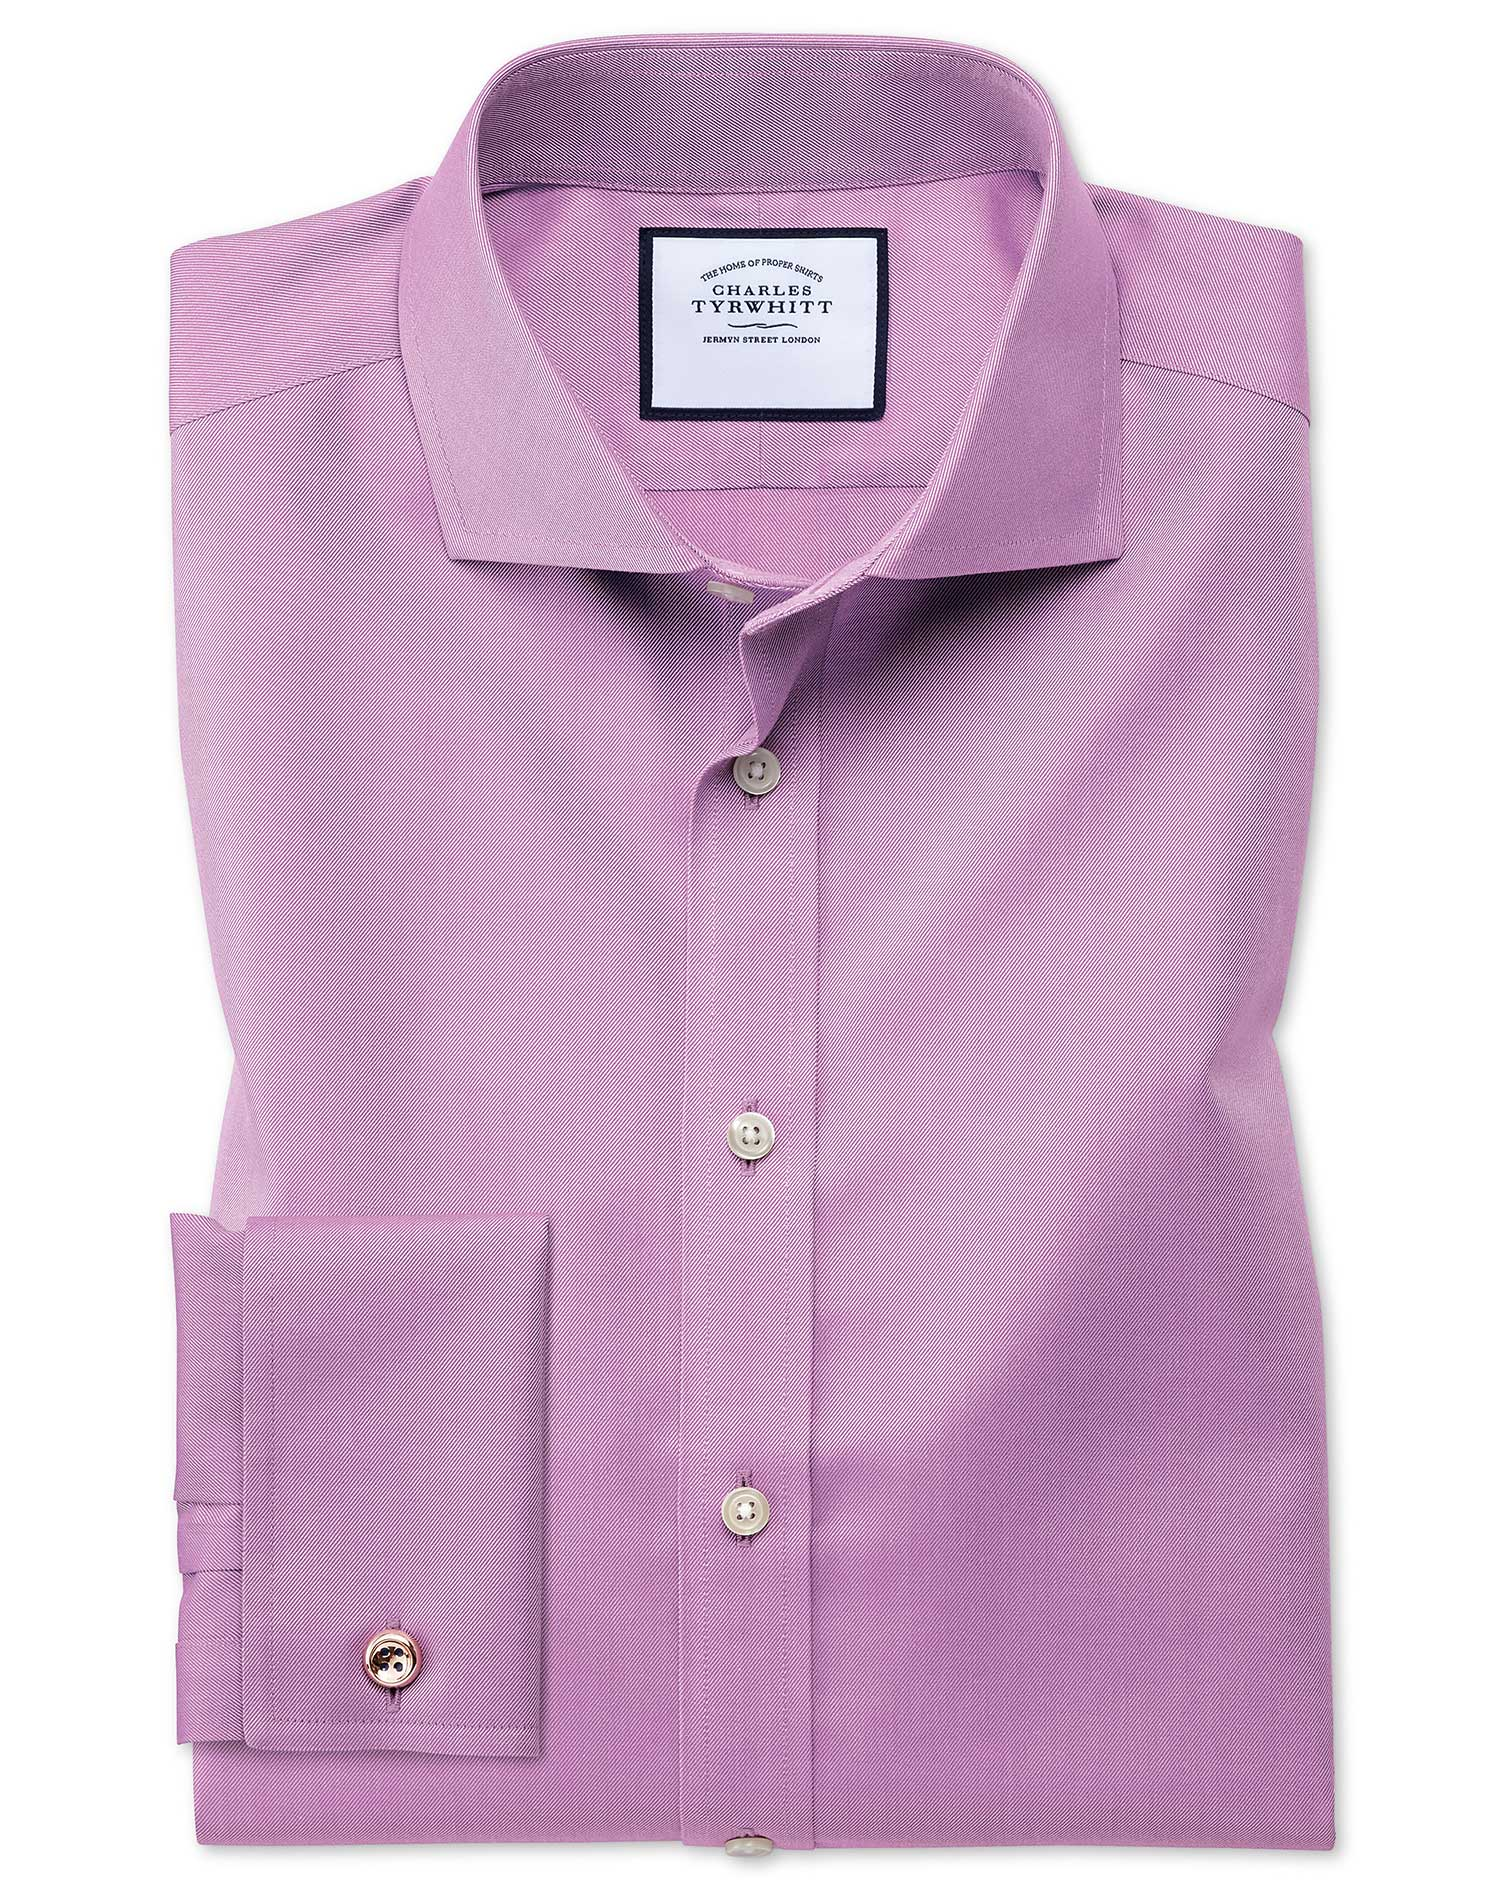 Extra Slim Fit Cutaway Collar Non-Iron Twill Violet Cotton Formal Shirt Double Cuff Size 14.5/33 by